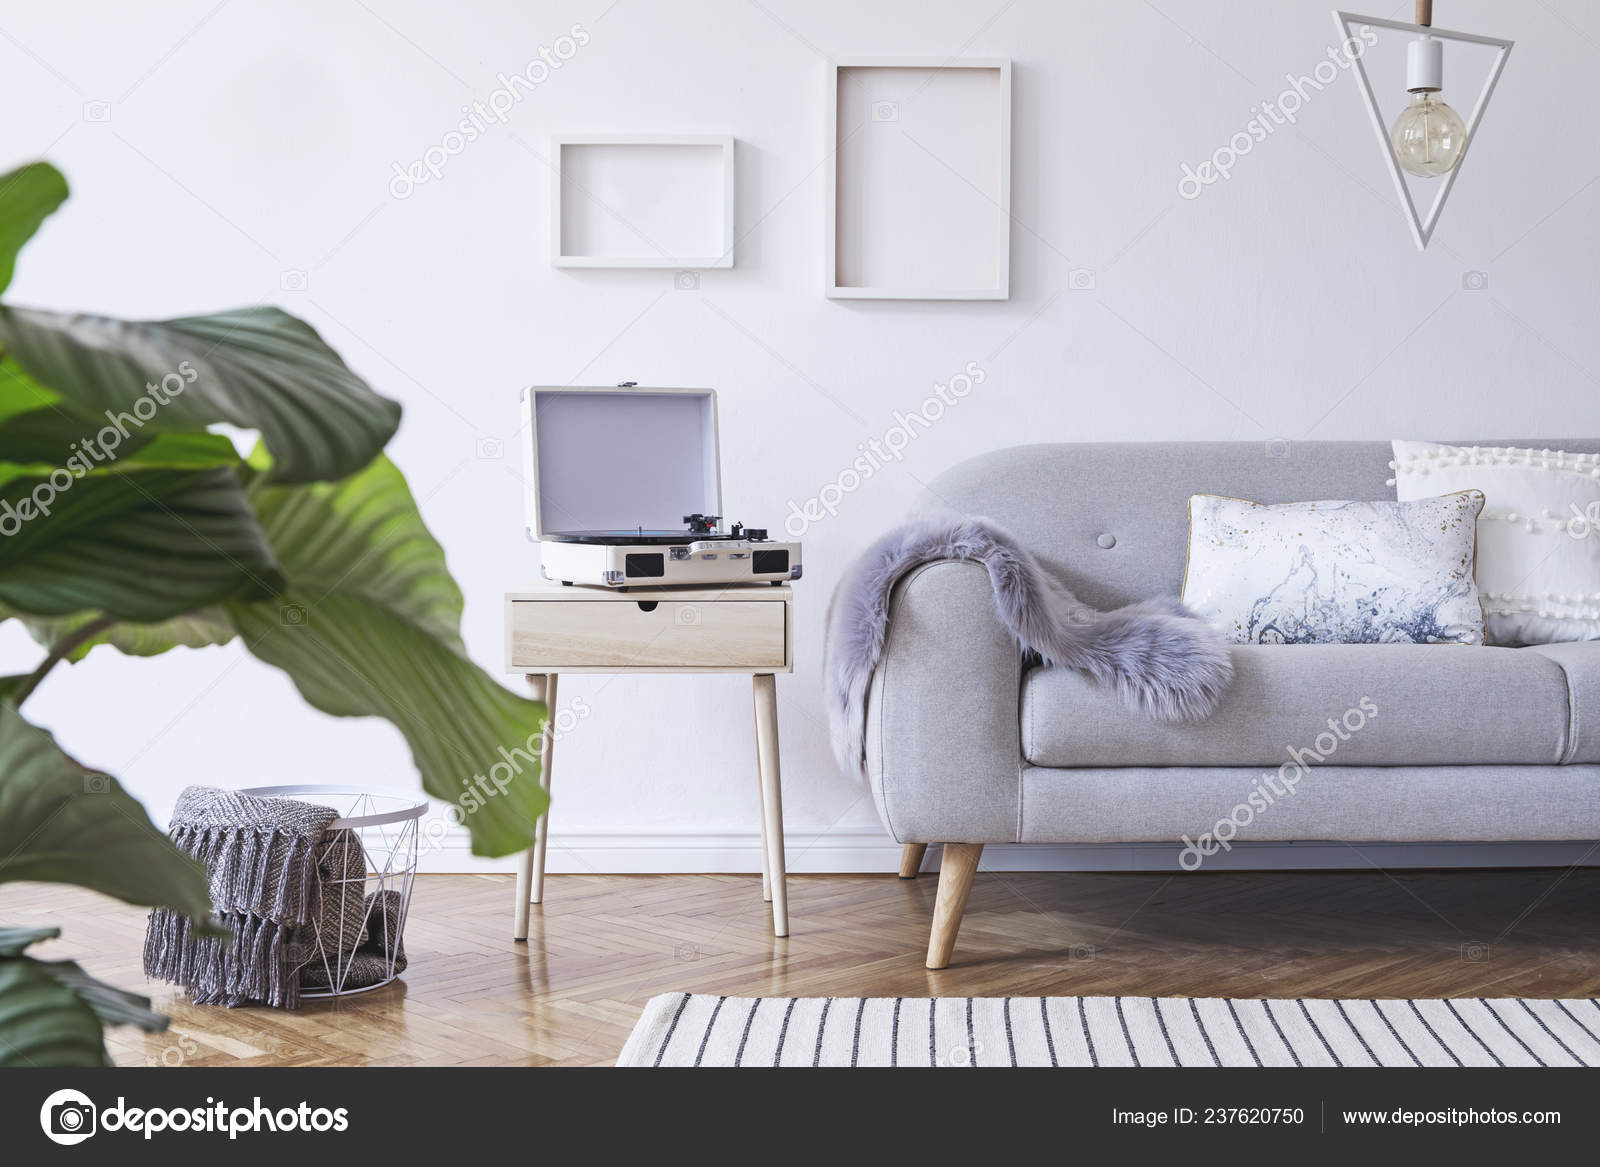 Picture of: Partial View Light Living Room Grey Sofa Scandinavian Style Stock Photo C Followtheflow 237620750